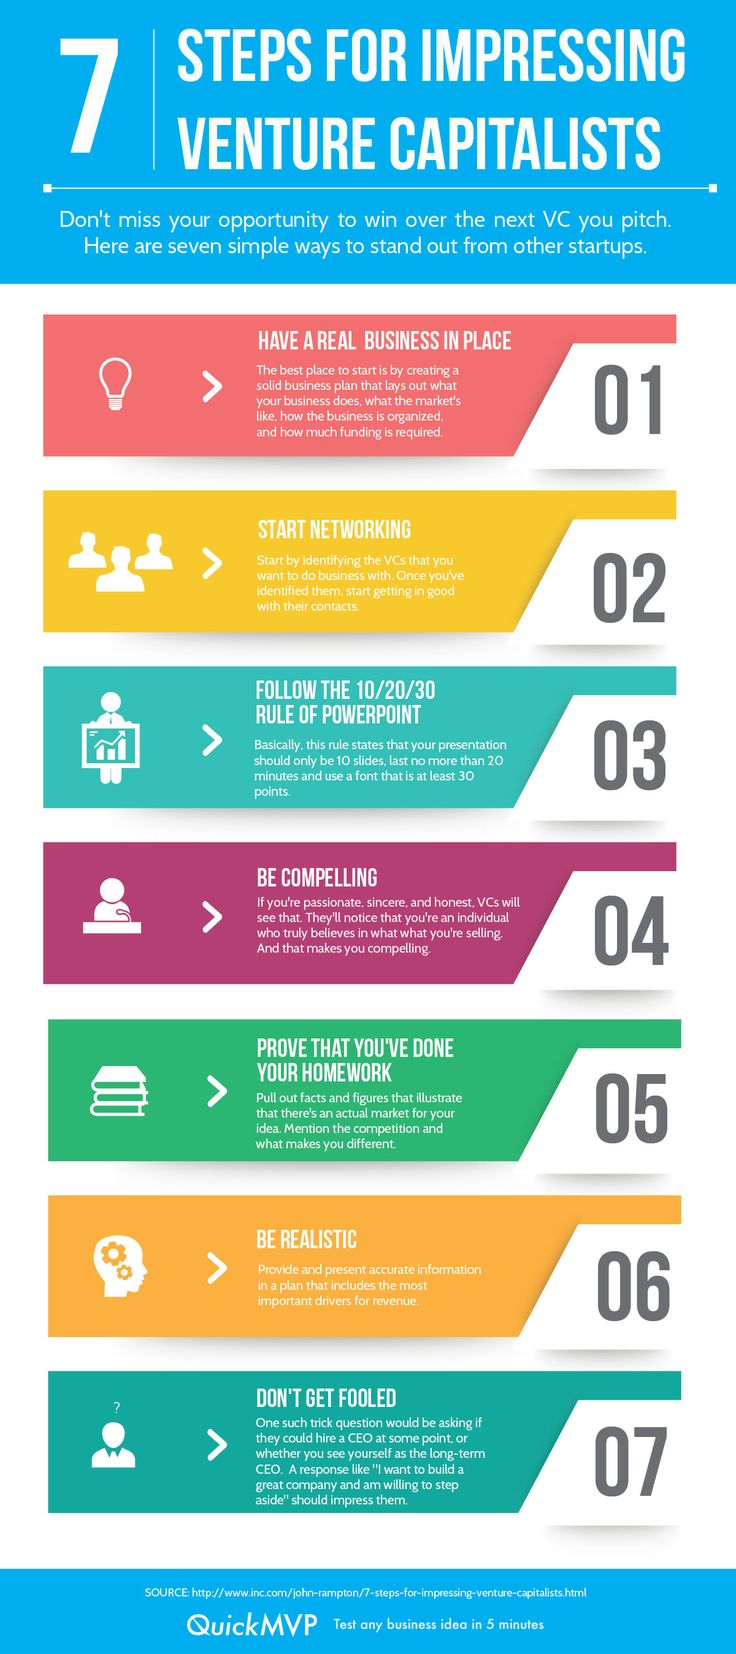 7 Steps for Impressing Venture Capitalists #infographic #vc #startups